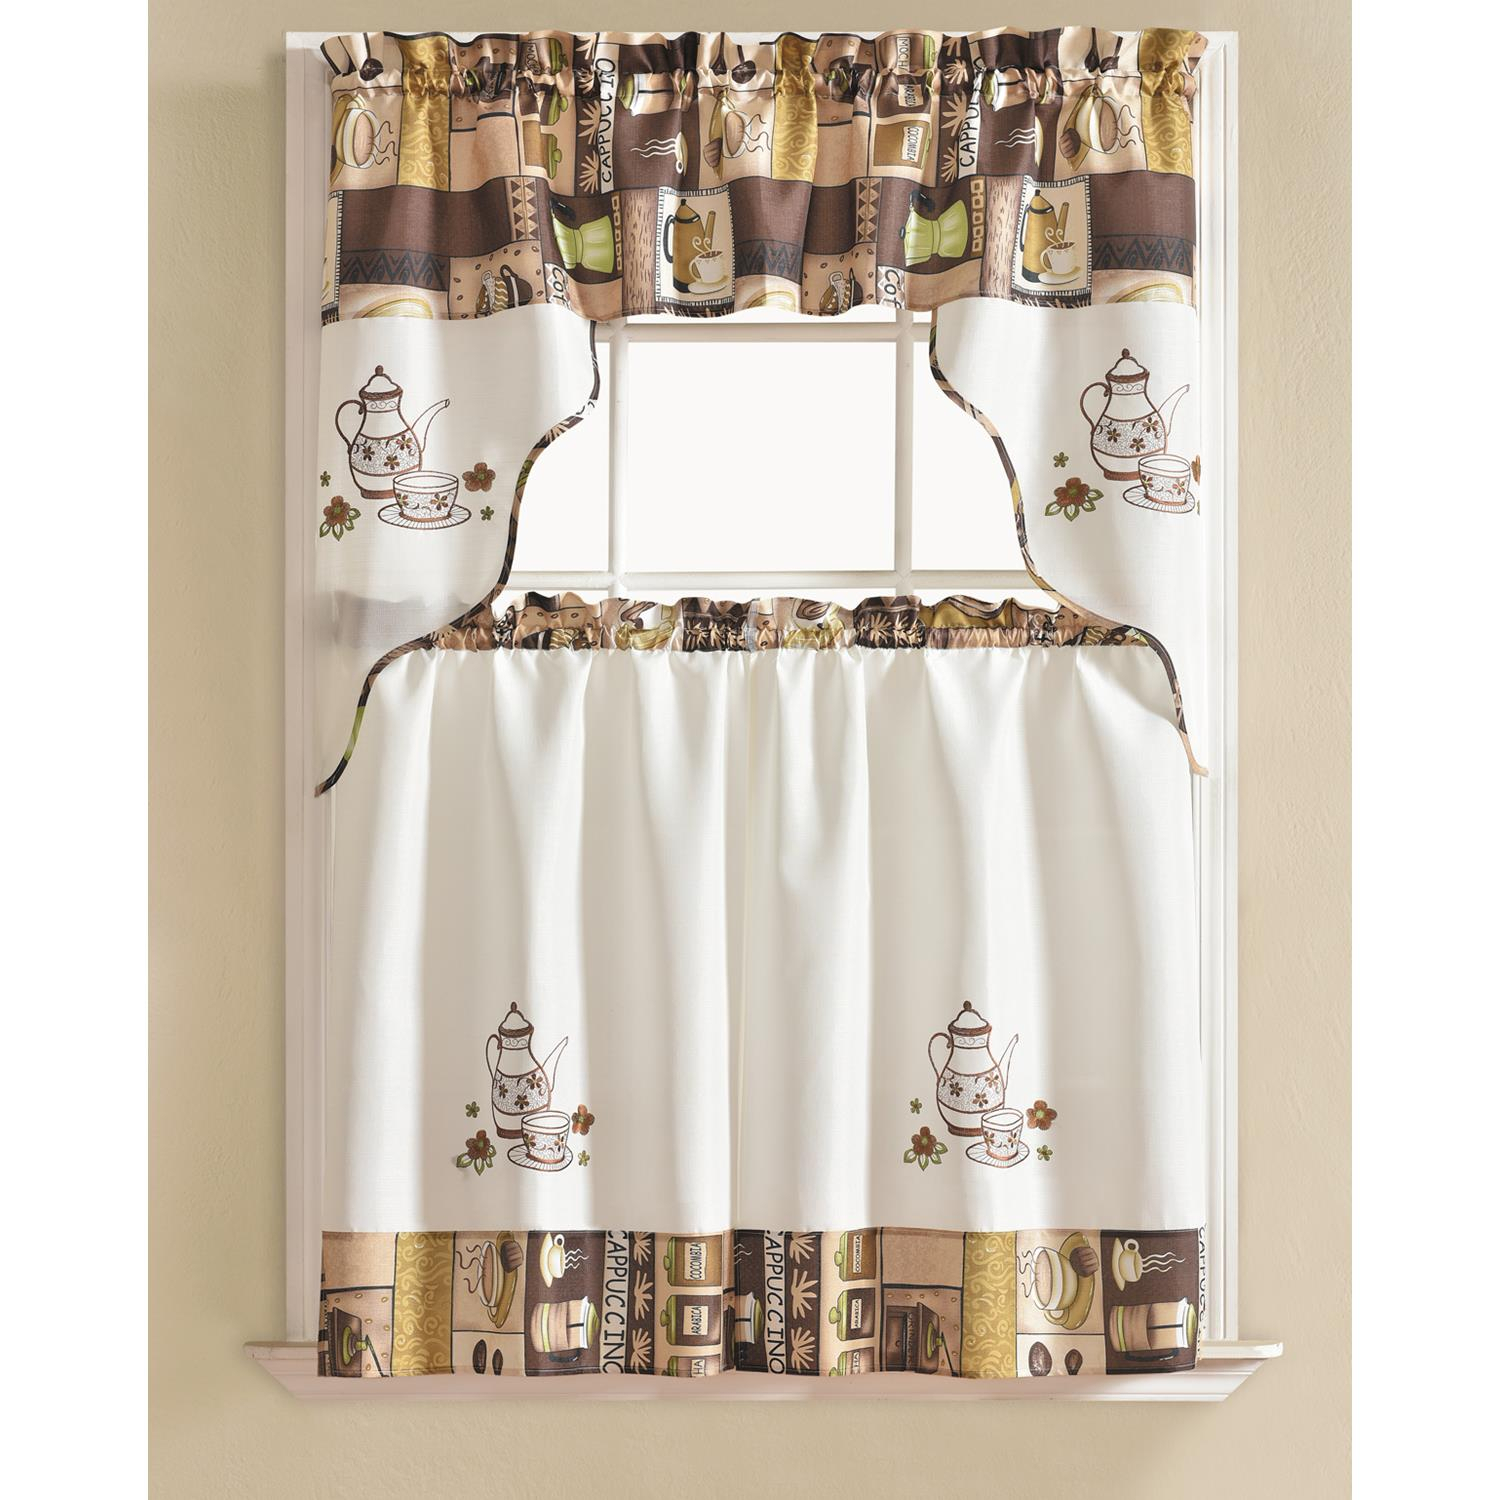 Details About Urban Embroidered Coffee Tier And Valance Kitchen Curtain Set With Traditional Two Piece Tailored Tier And Valance Window Curtains (View 10 of 20)